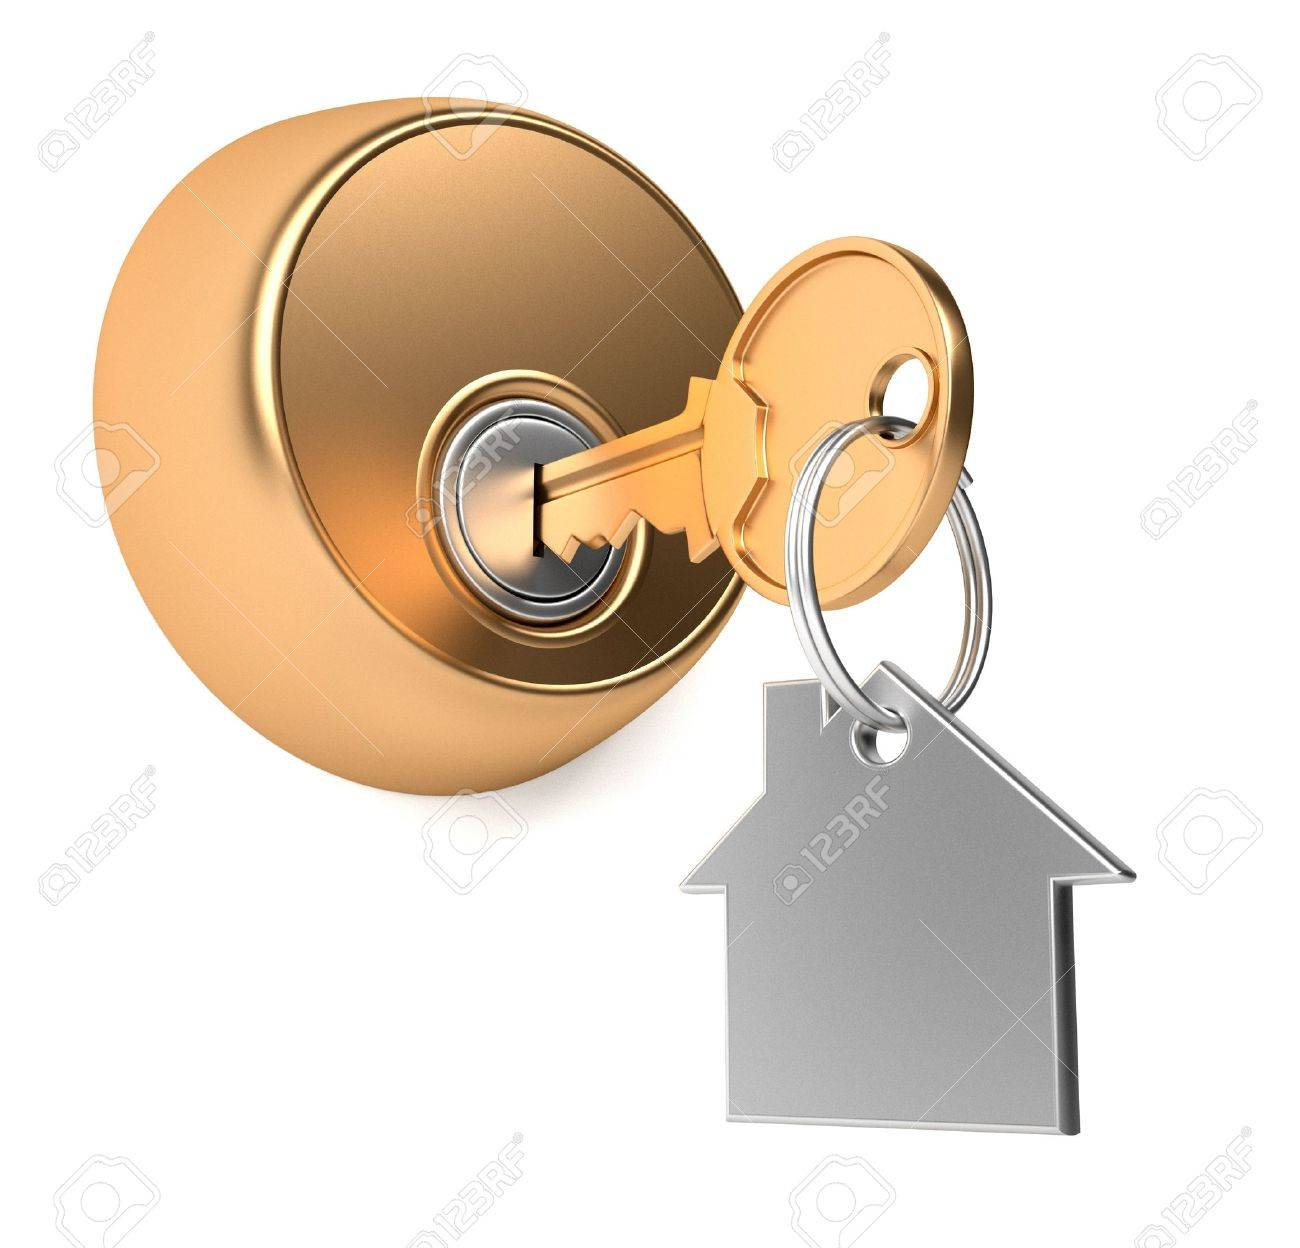 With golden key 3d rendering plan concept with golden key 3d rendering - House Key Golden Key In Keyhole With Label 3d Render Illustration Stock Photo